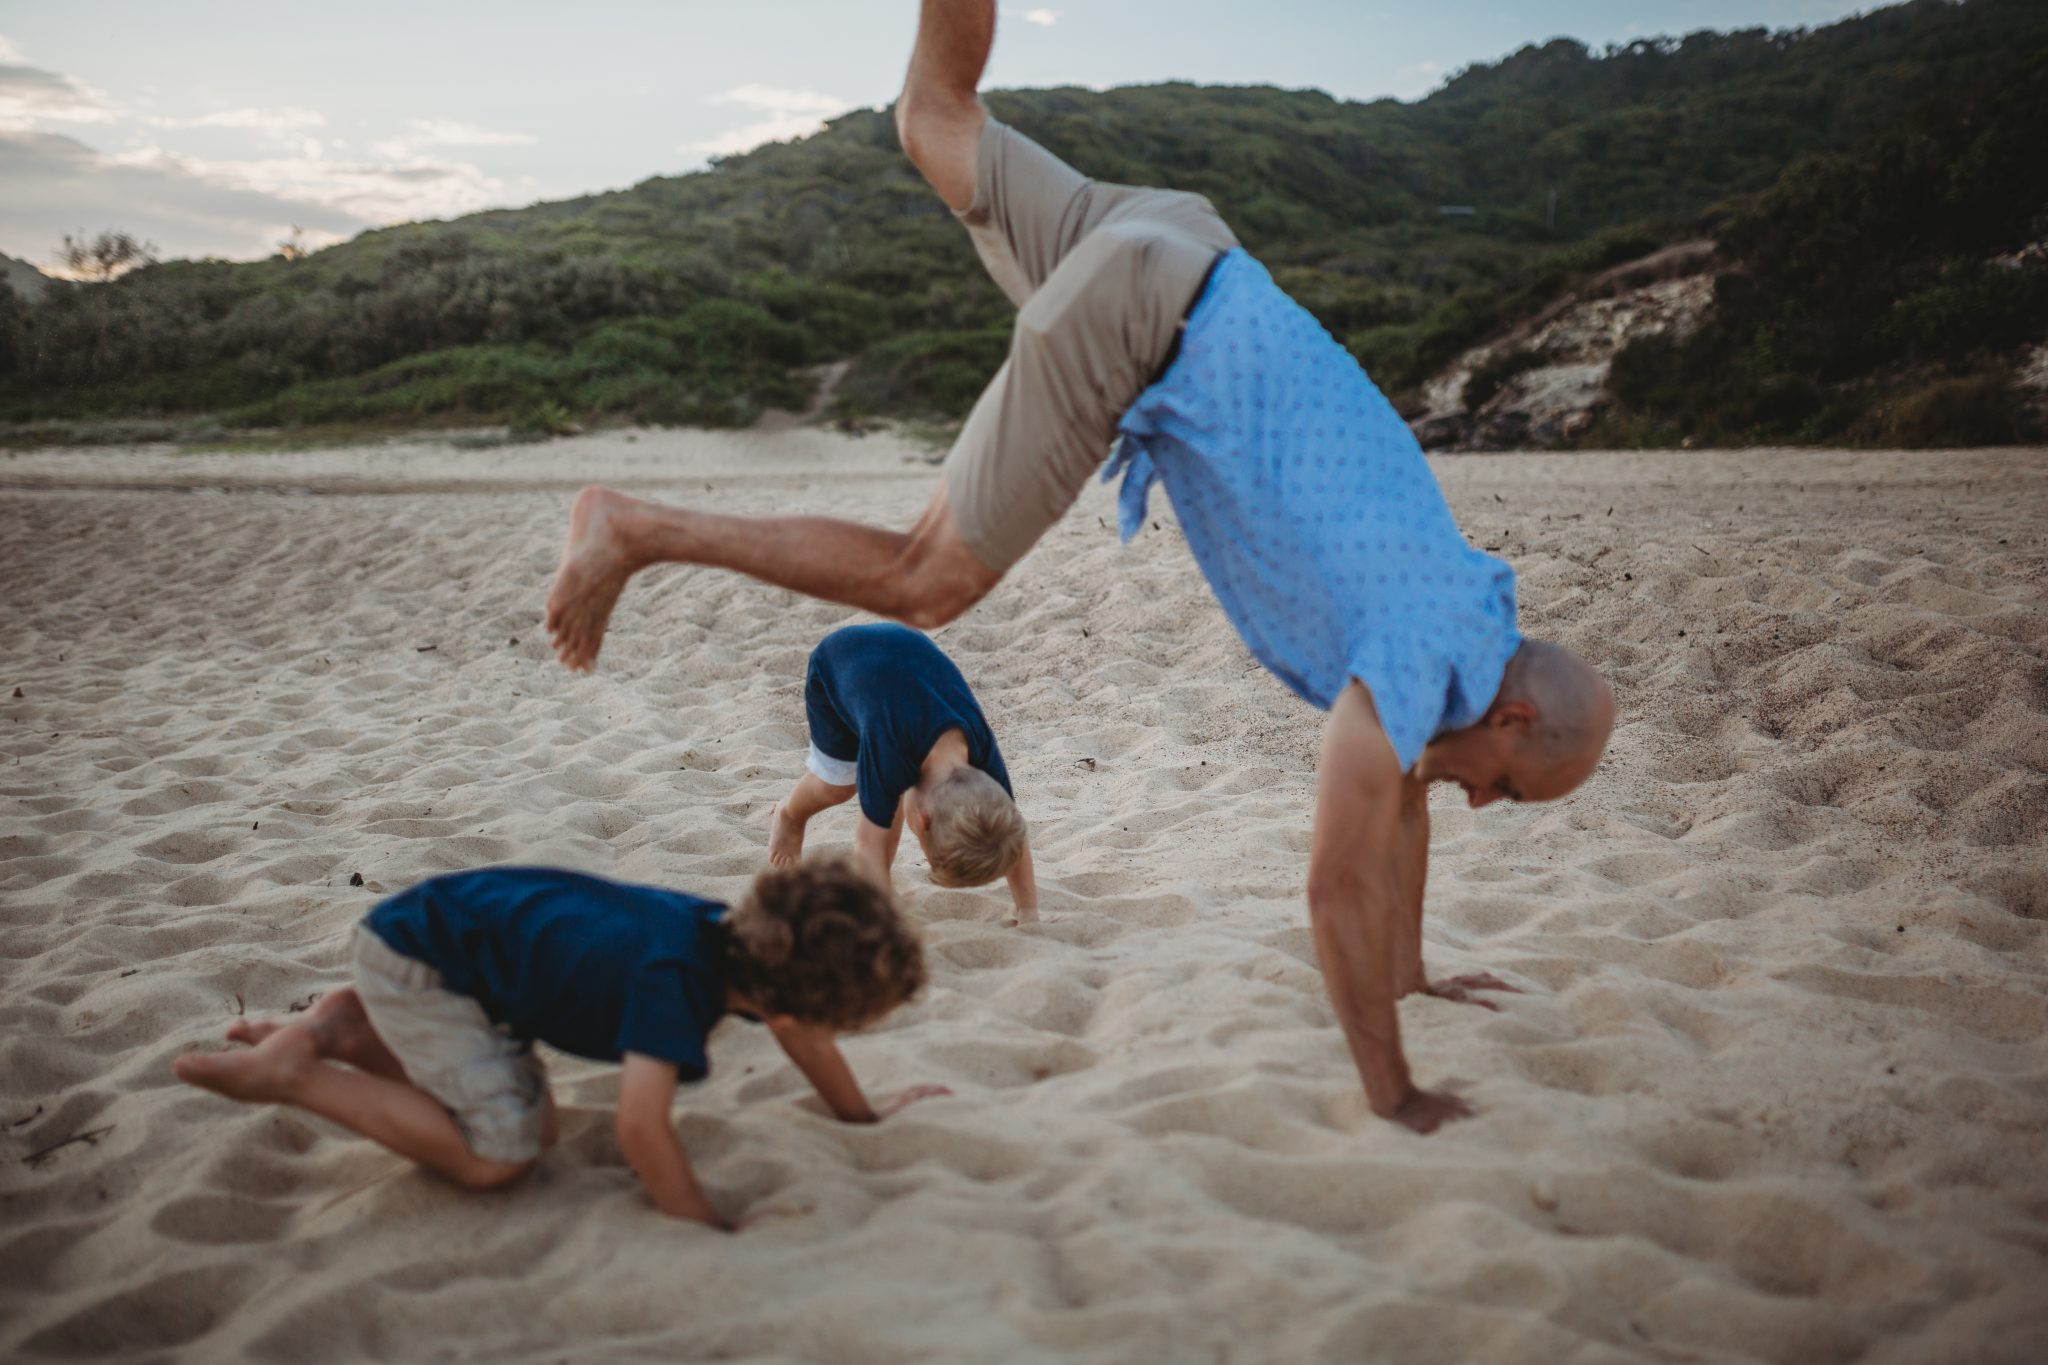 Newcastle family photographer; father and sons playing